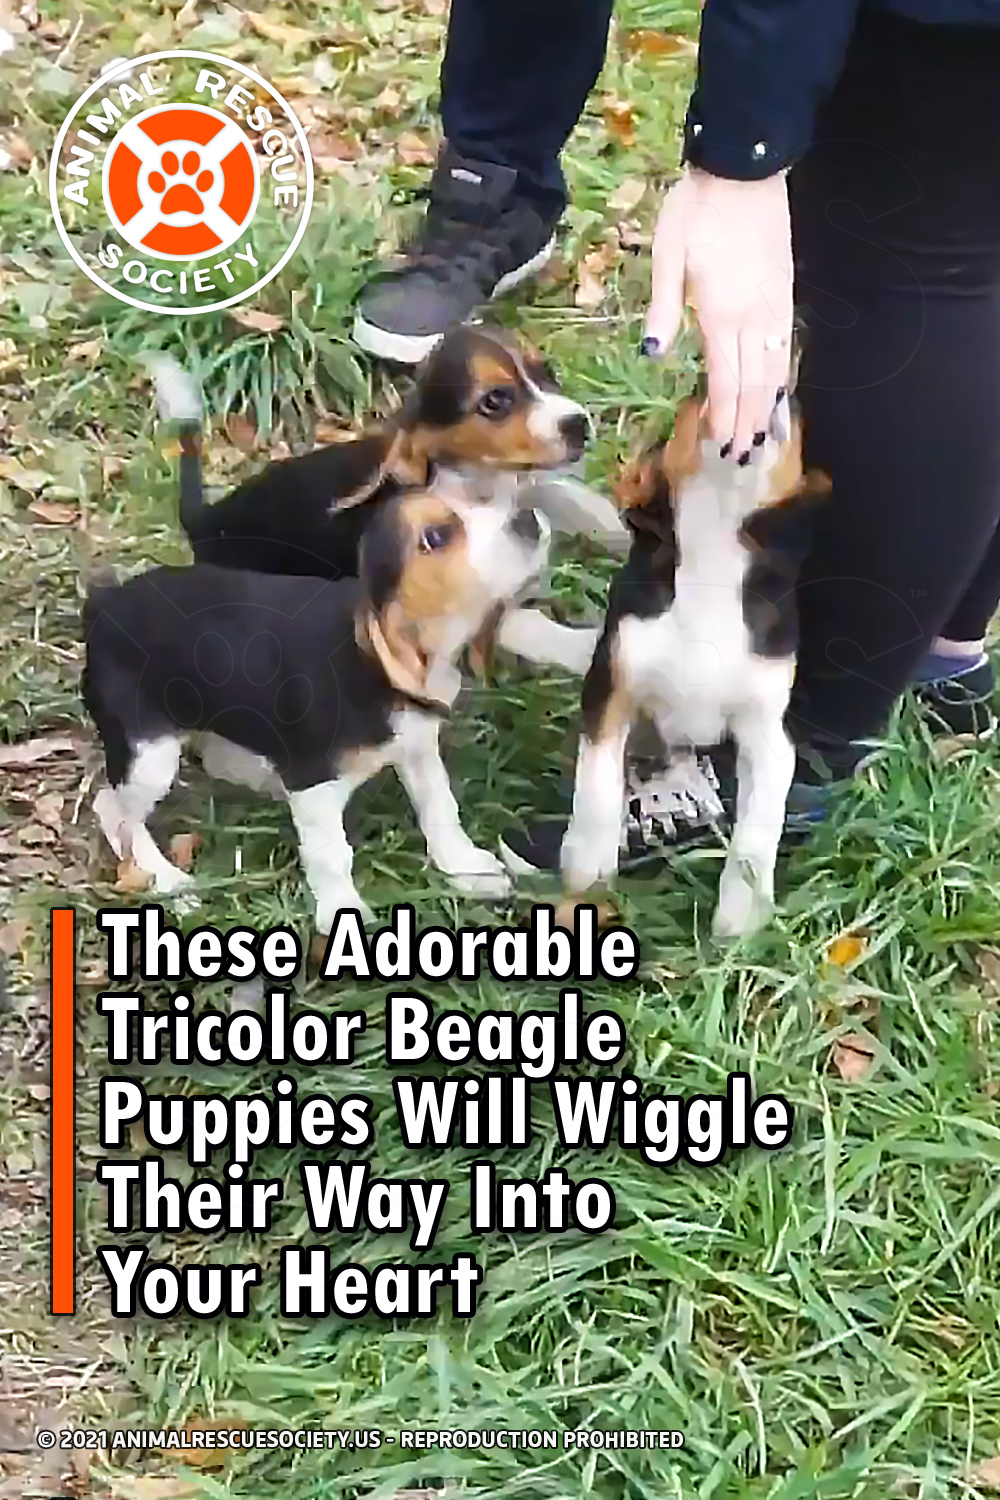 These Adorable Tricolor Beagle Puppies Will Wiggle Their Way Into Your Heart